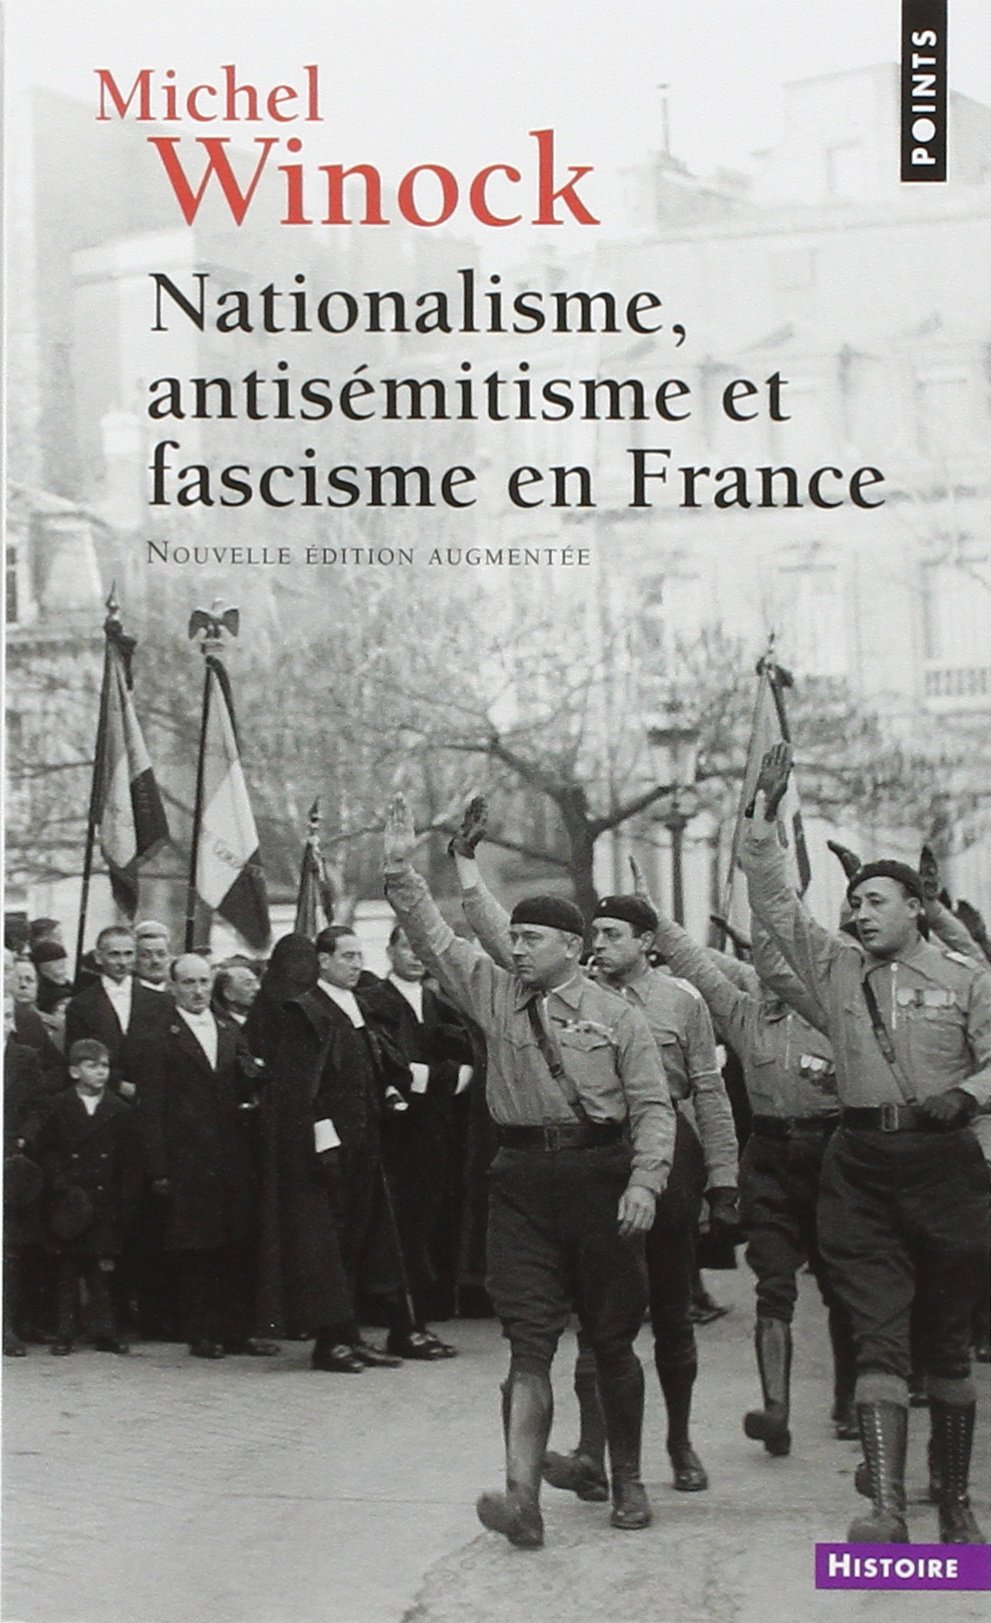 Nationalisme, antisémitisme et fascisme en France - Michel Winock